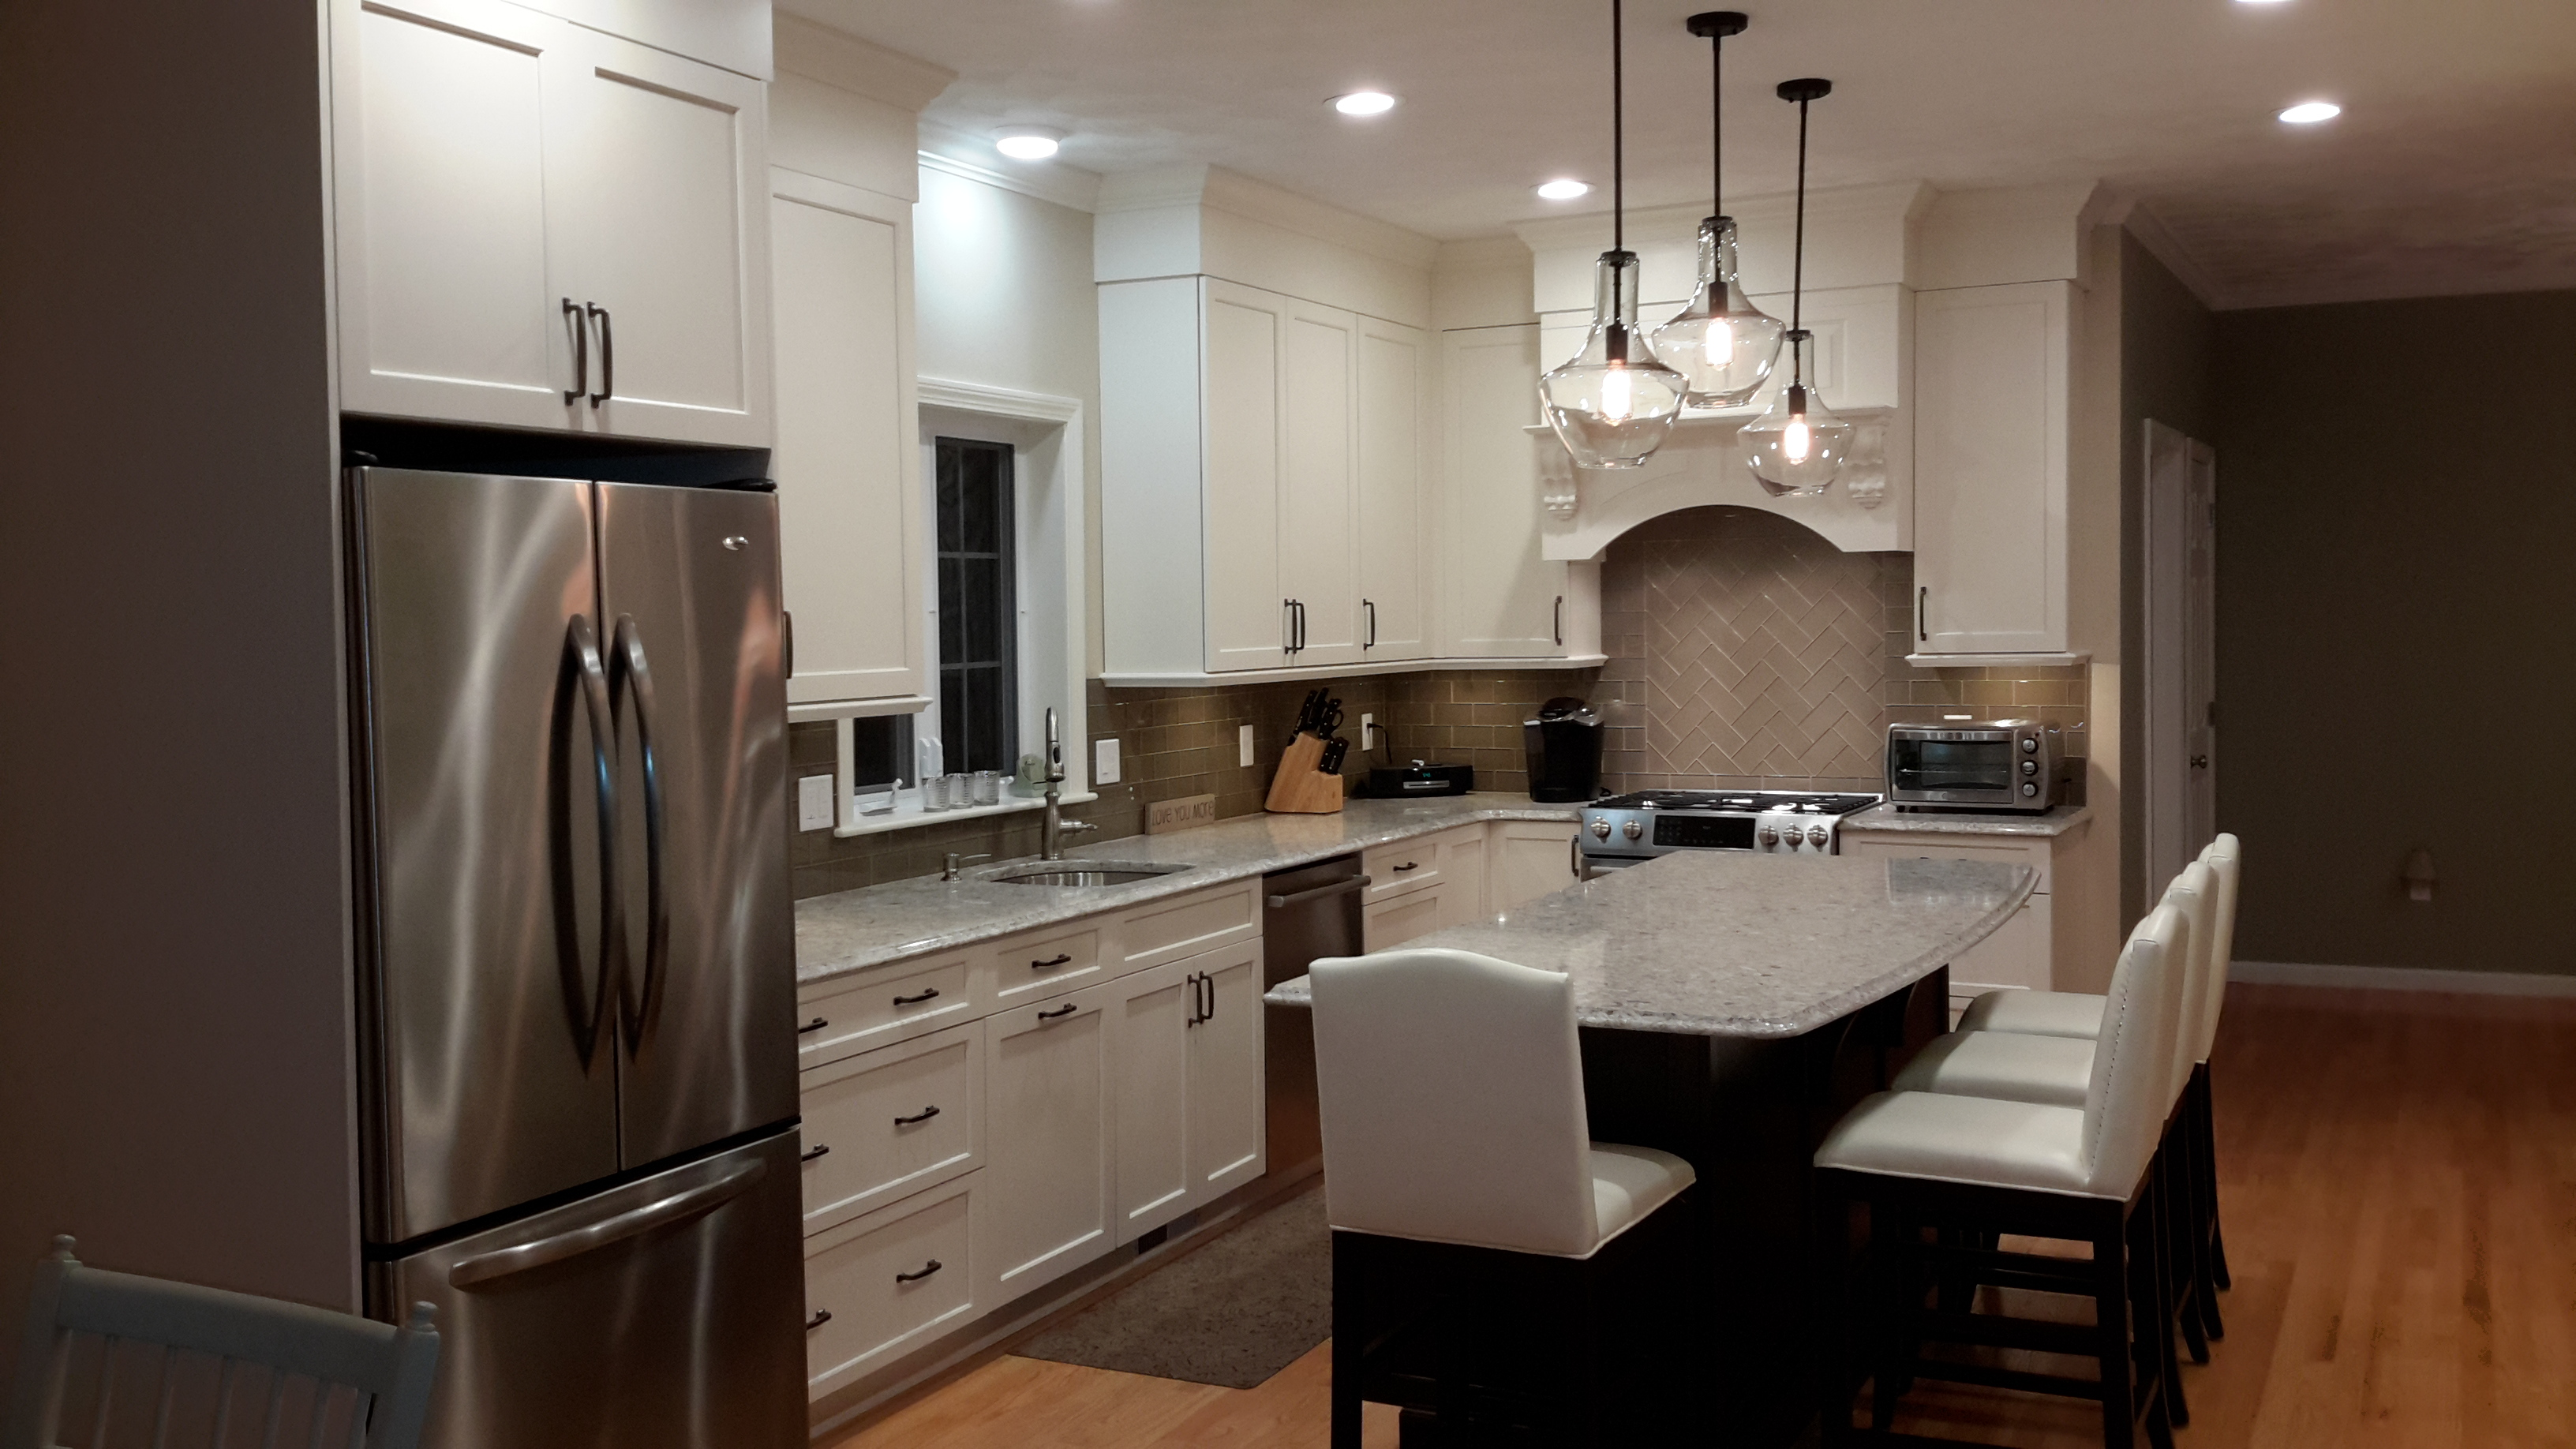 Gallery Kitchen And Bath Design Center And Remodeling